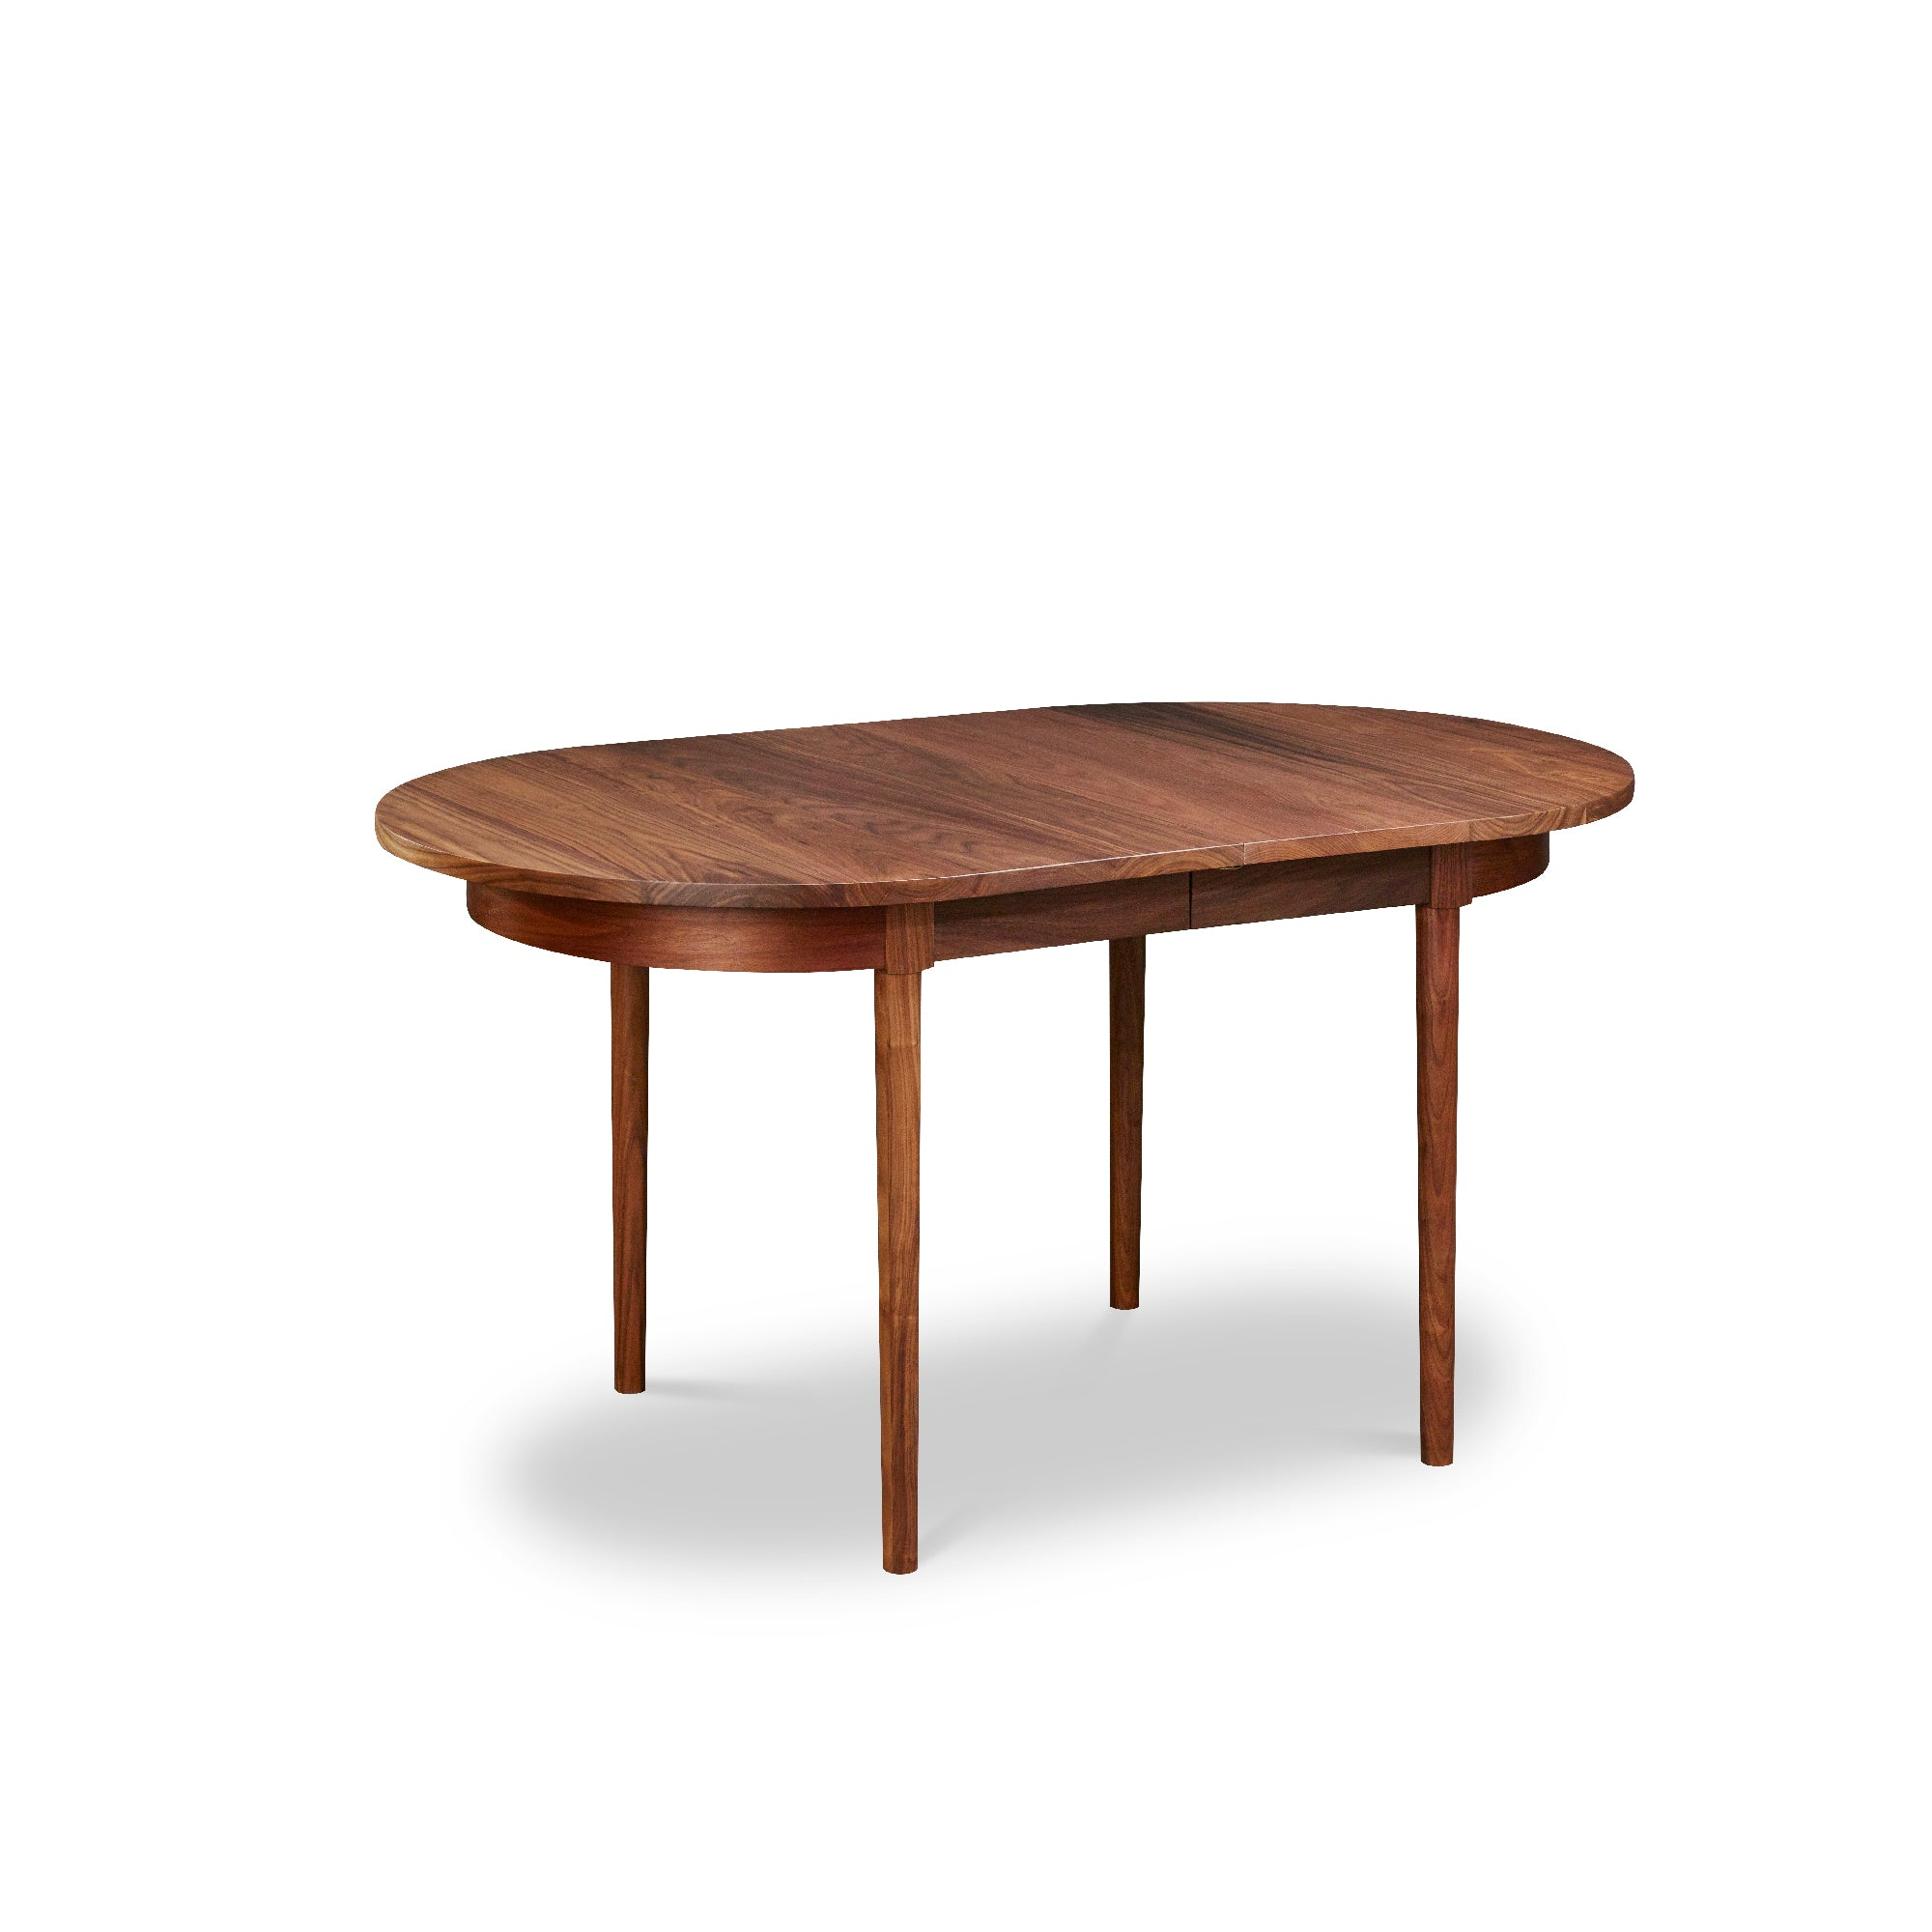 Modern solid walnut oval dining table from Chilton Furniture Co.